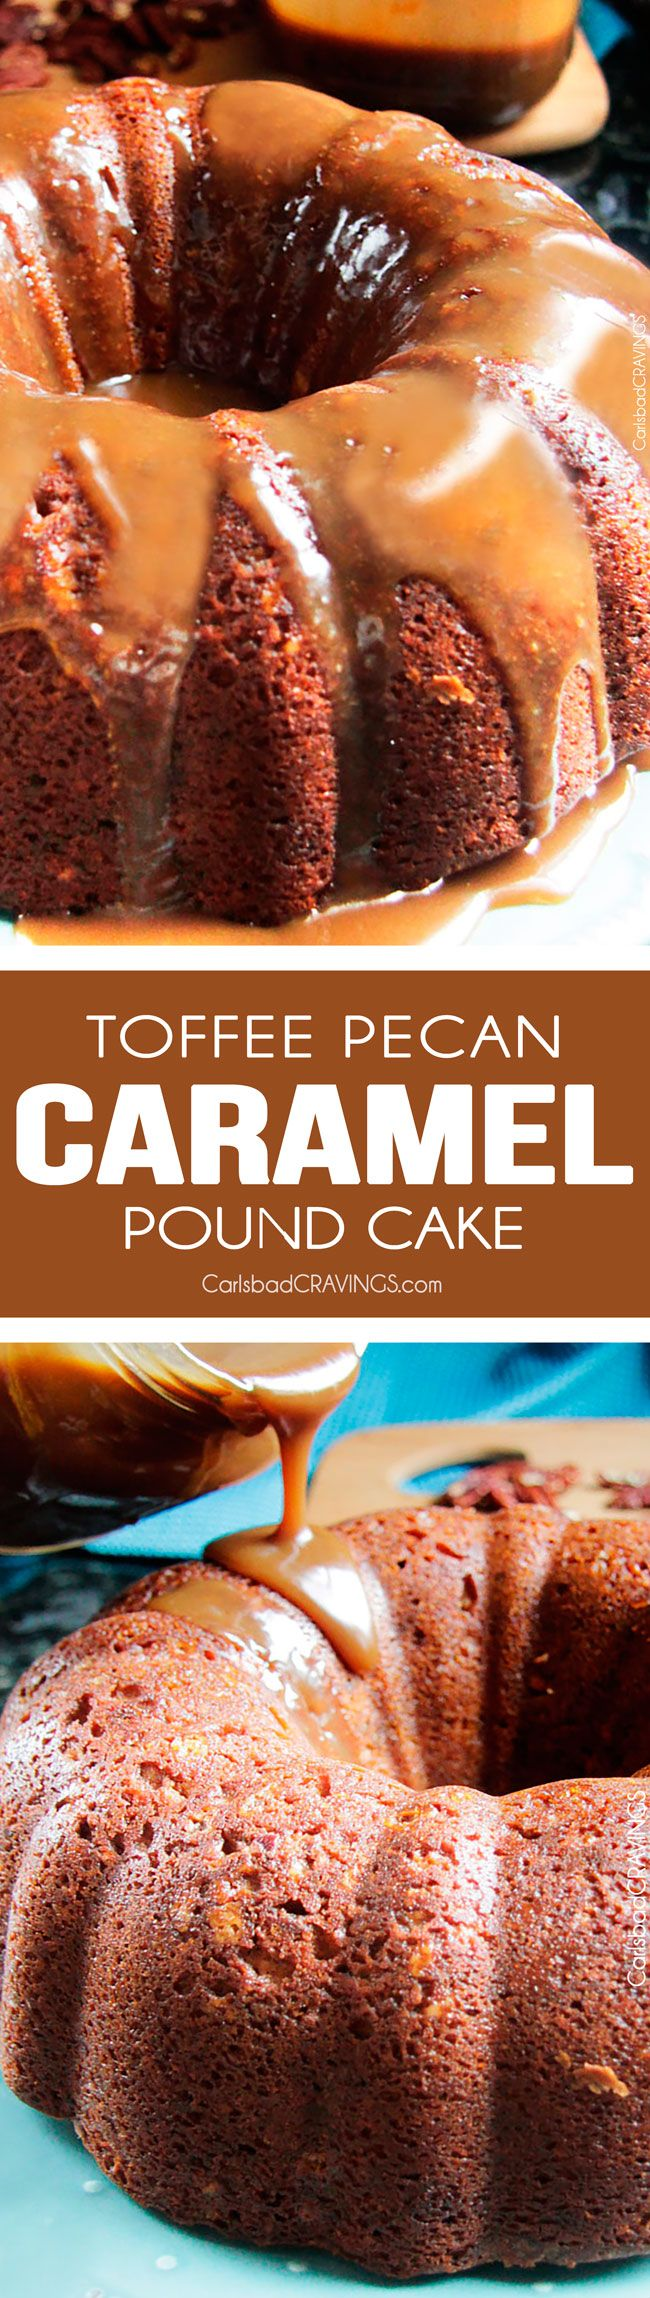 CROWD PLEASING CAKE!! Toffee Pecan Caramel Pound Cake - Moist cake bursting with sweet toffee bits, crunchy pecans and rich creamy caramel in every bite! AMAZING